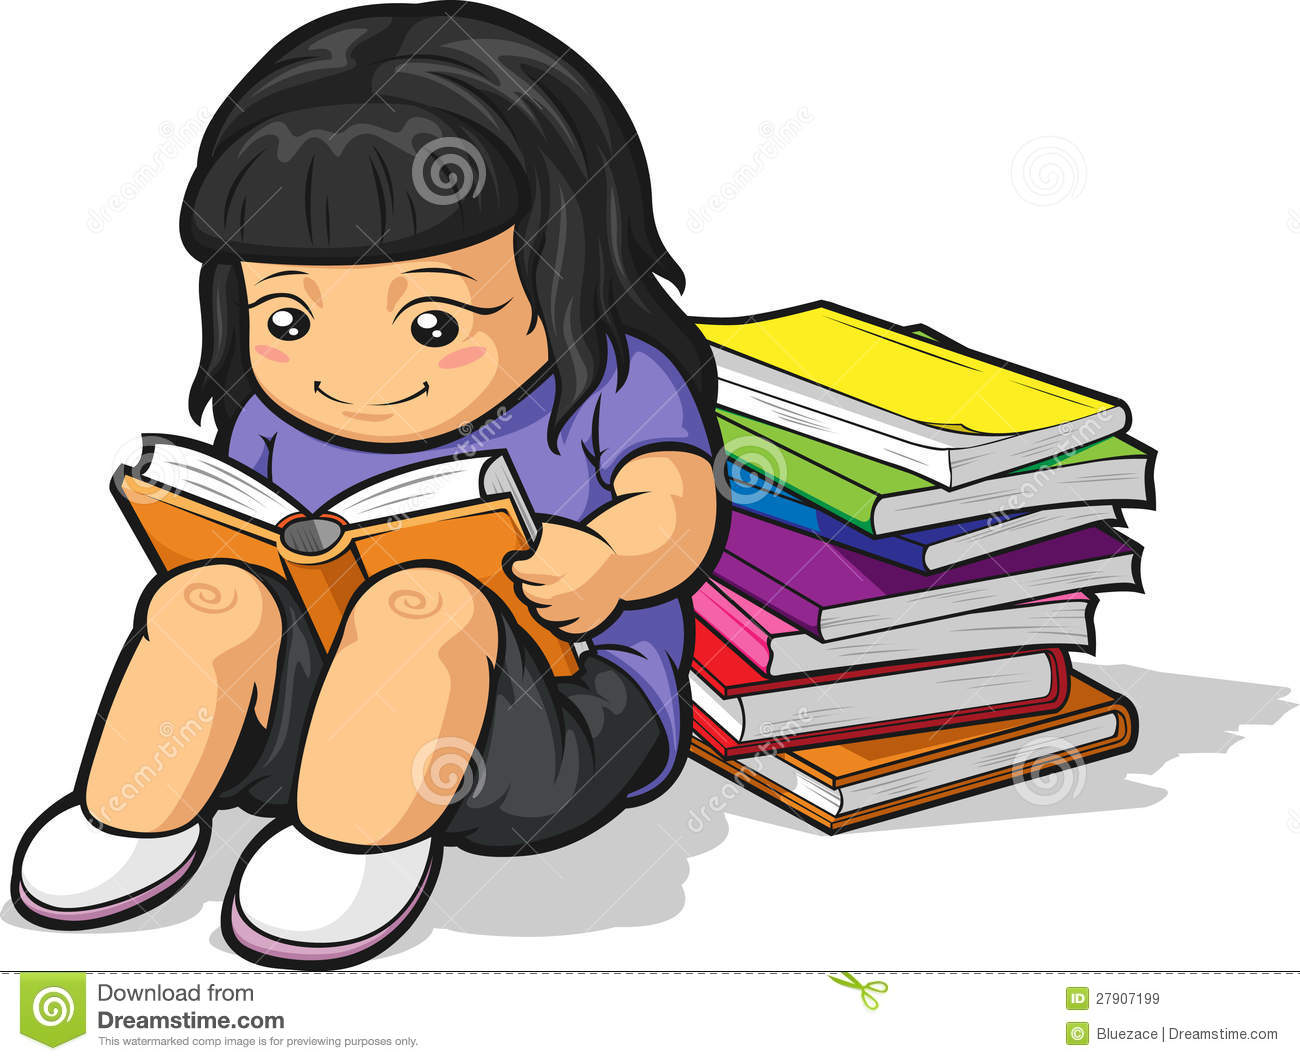 Cartoon Of Girl Student Studying & Reading Book Royalty Free Stock.